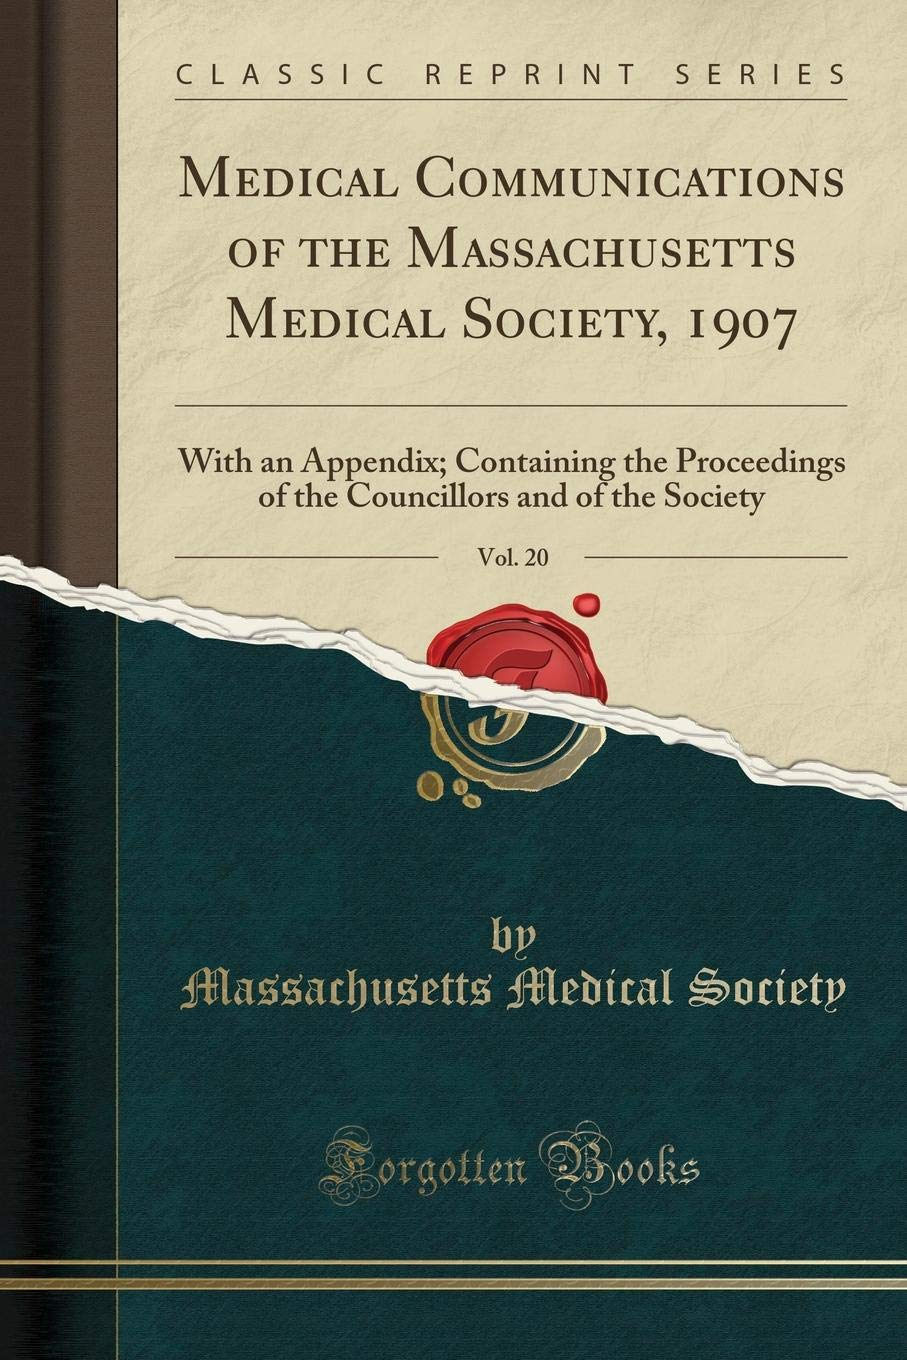 Download Medical Communications of the Massachusetts Medical Society, 1907, Vol. 20: With an Appendix; Containing the Proceedings of the Councillors and of the Society (Classic Reprint) PDF